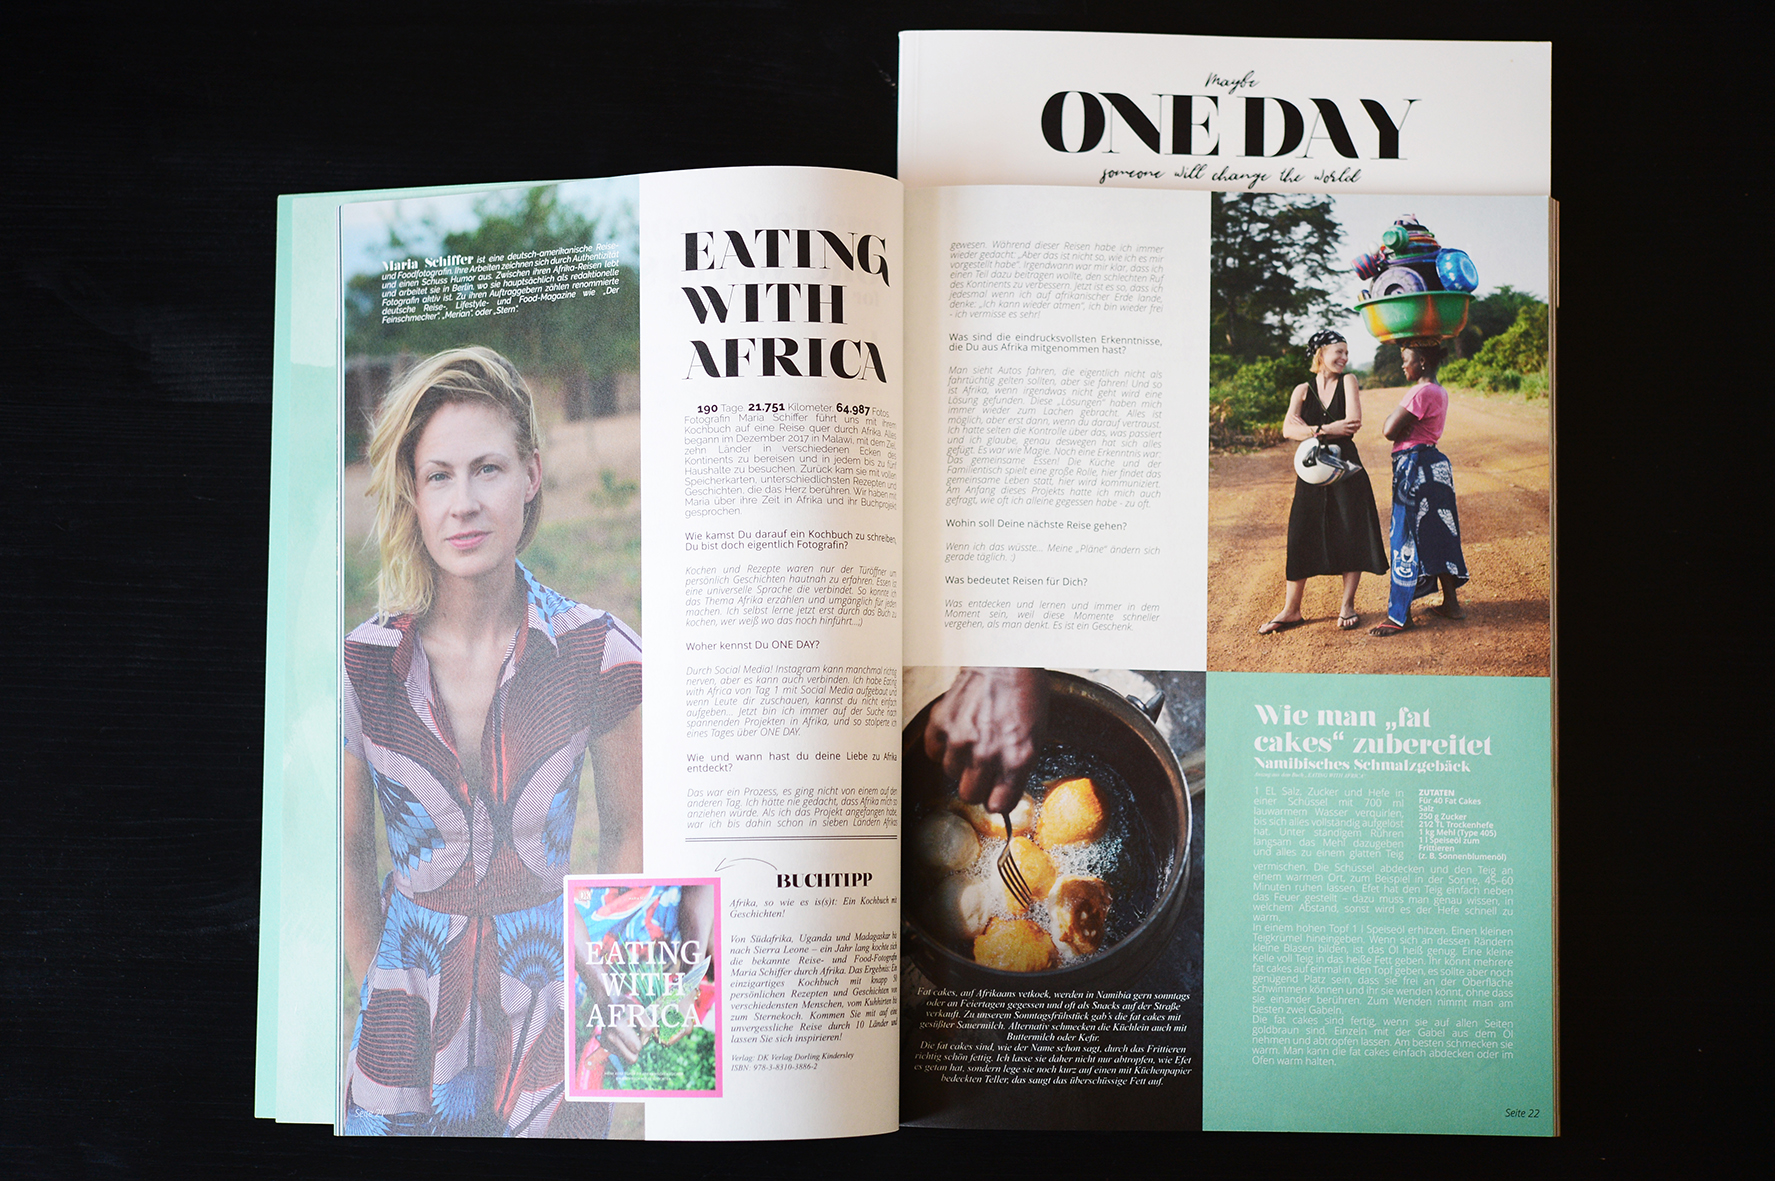 One Day, Eating with Africa, Maria Schiffer